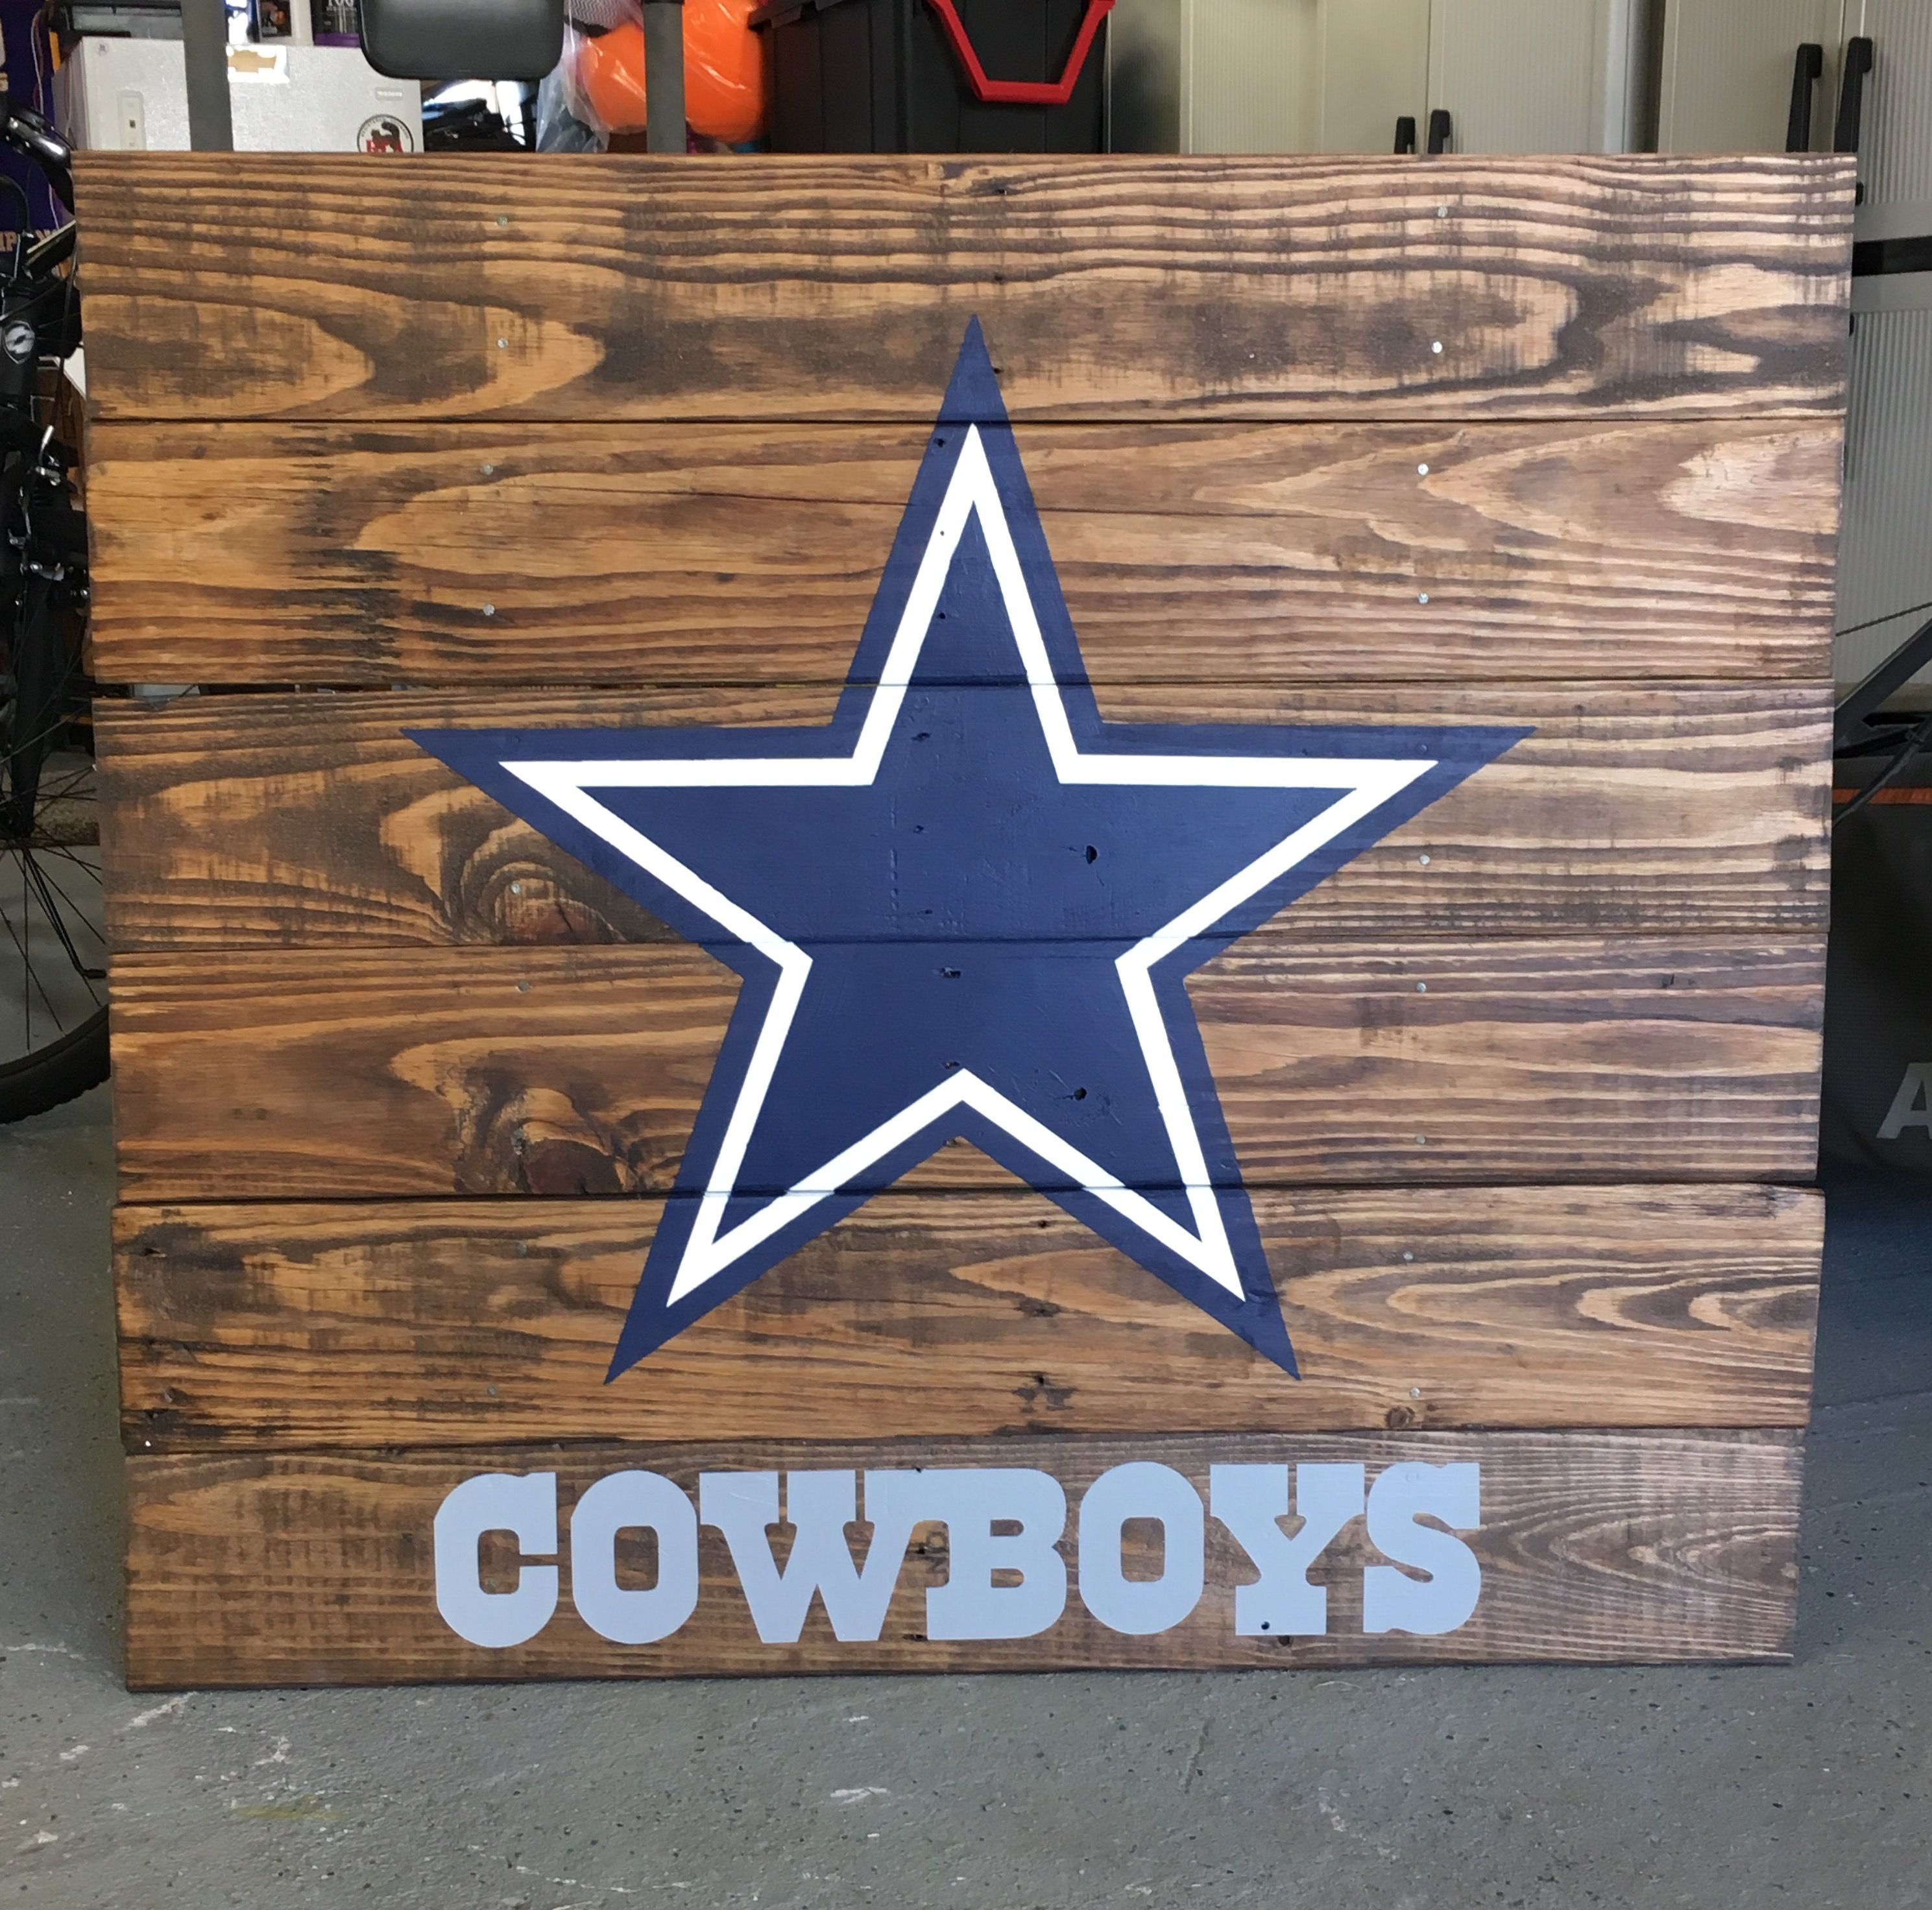 Dallas Cowboys Wooden Sign Stained And Painted Dallas Cowboys Decor Dallas Cowboys Signs Cowboy Decorations